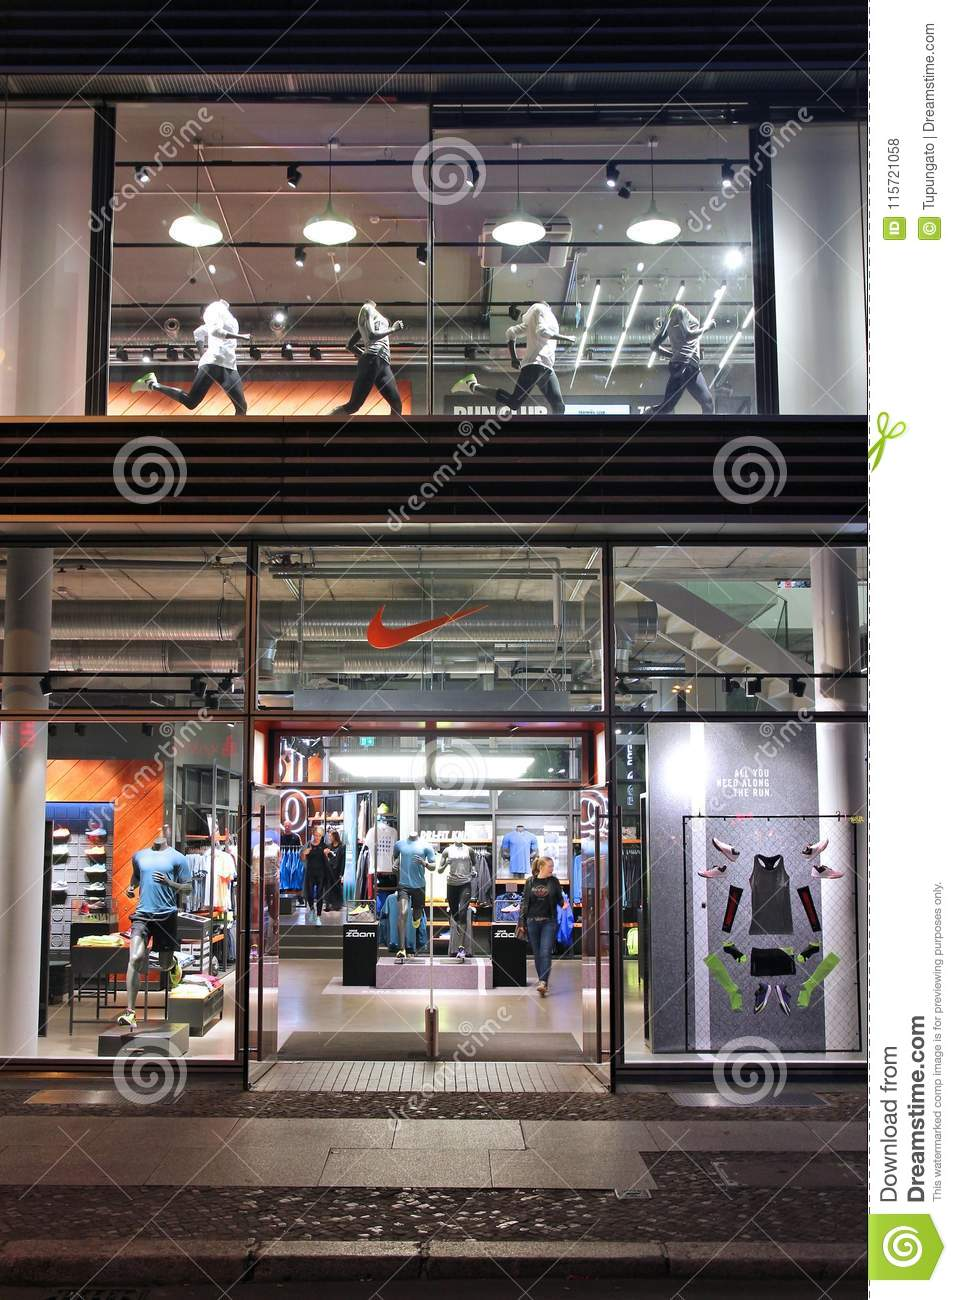 87e22b73d3cc9 BERLIN, GERMANY - AUGUST 25, 2014: People visit Nike store in Berlin. As of  2014 Nike Inc operates some 850 retail sports goods stores worldwide.